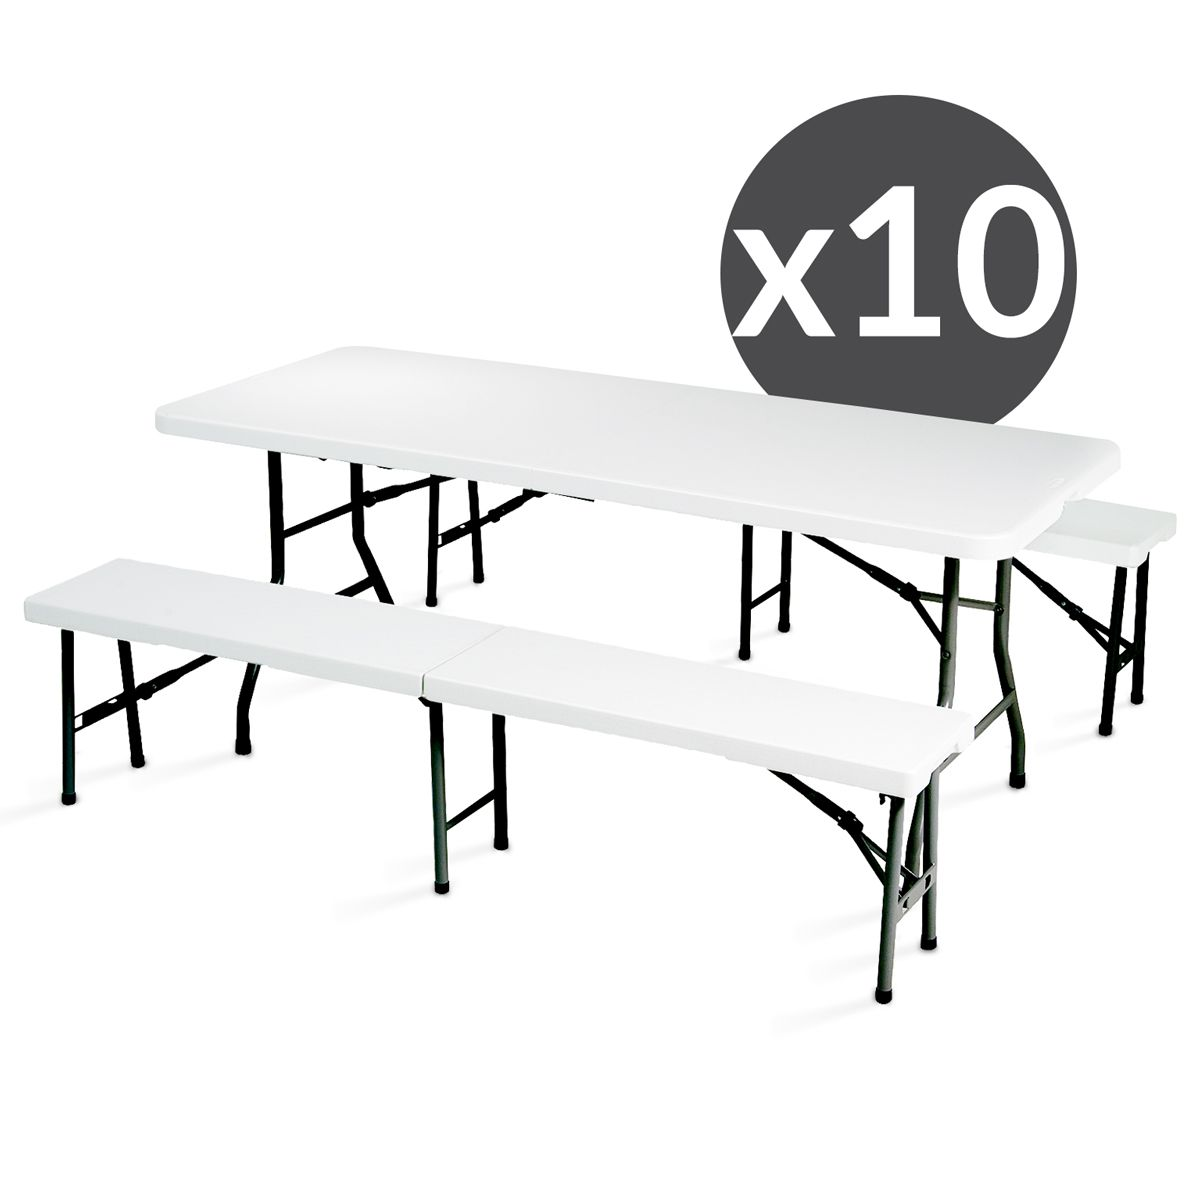 table et bancs pliants table pliante bancs pliants neuve ensemble festivites eco table x cm et. Black Bedroom Furniture Sets. Home Design Ideas